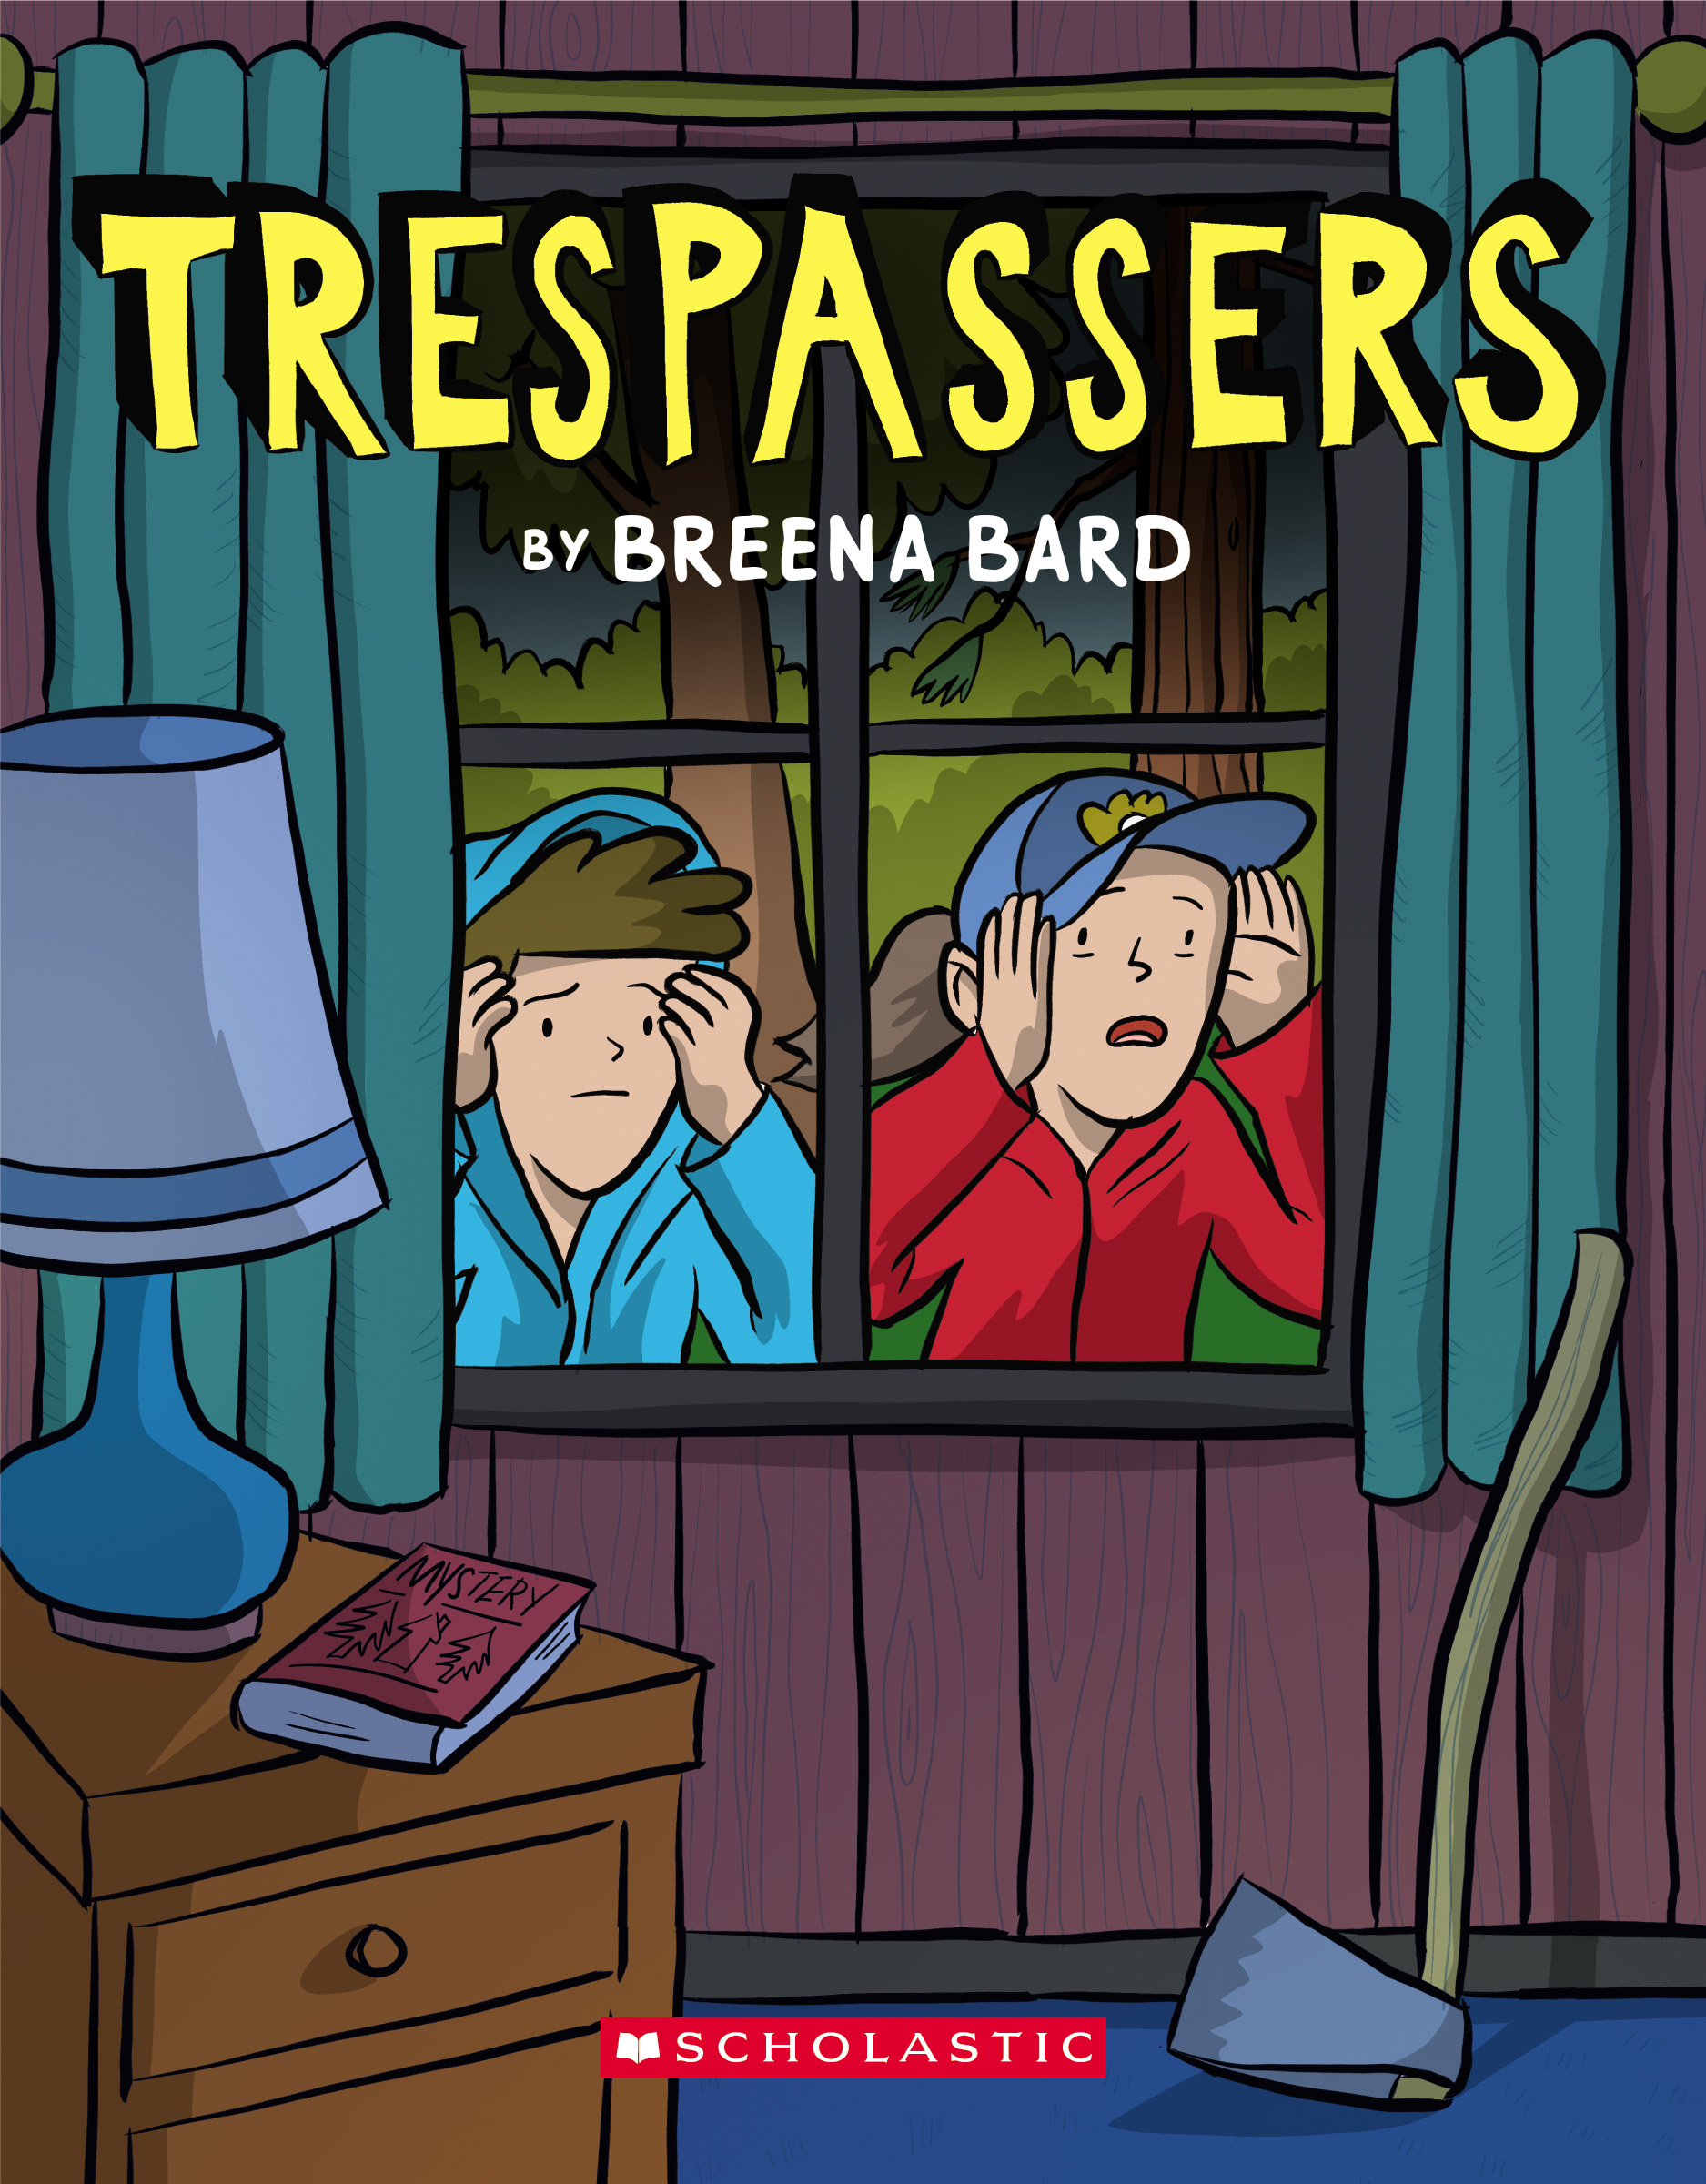 Trespassers by Breena Bard